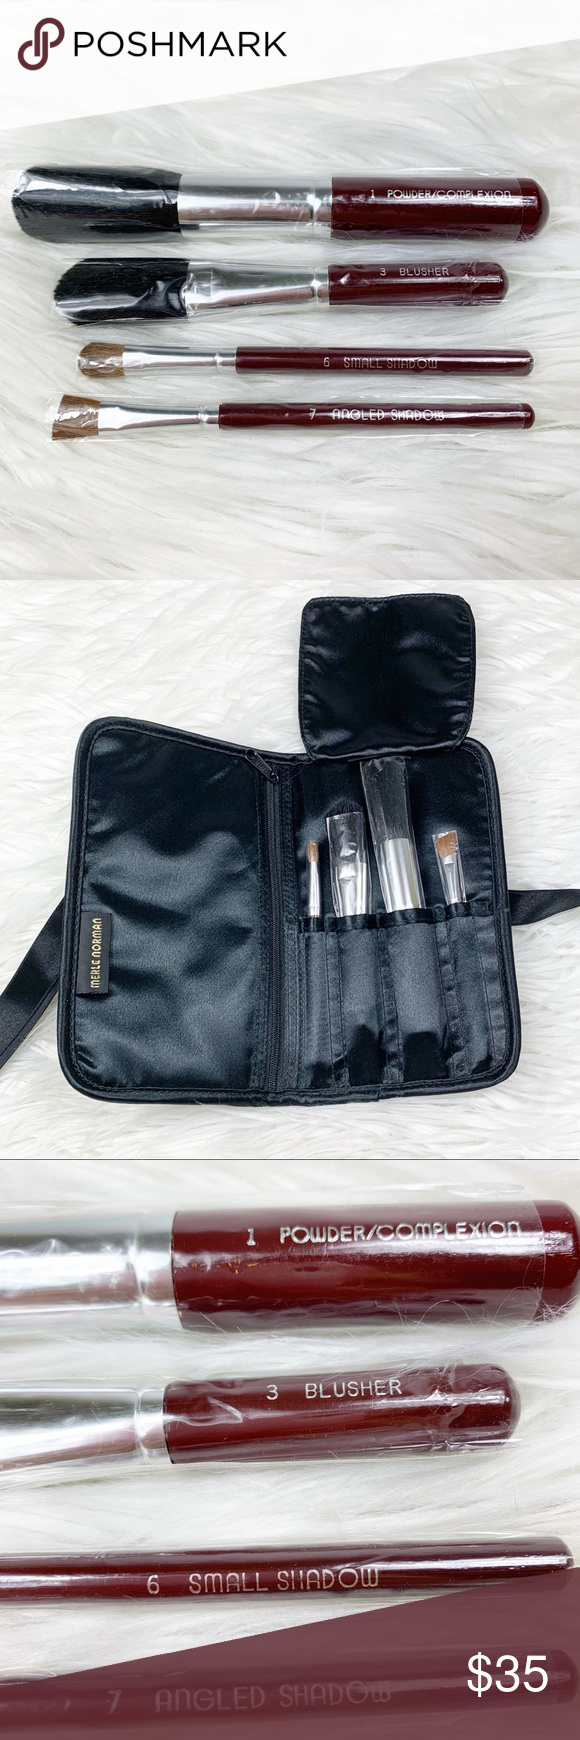 Merle Norman Set of 4 Makeup Cosmetic Brushes Bag NWT It